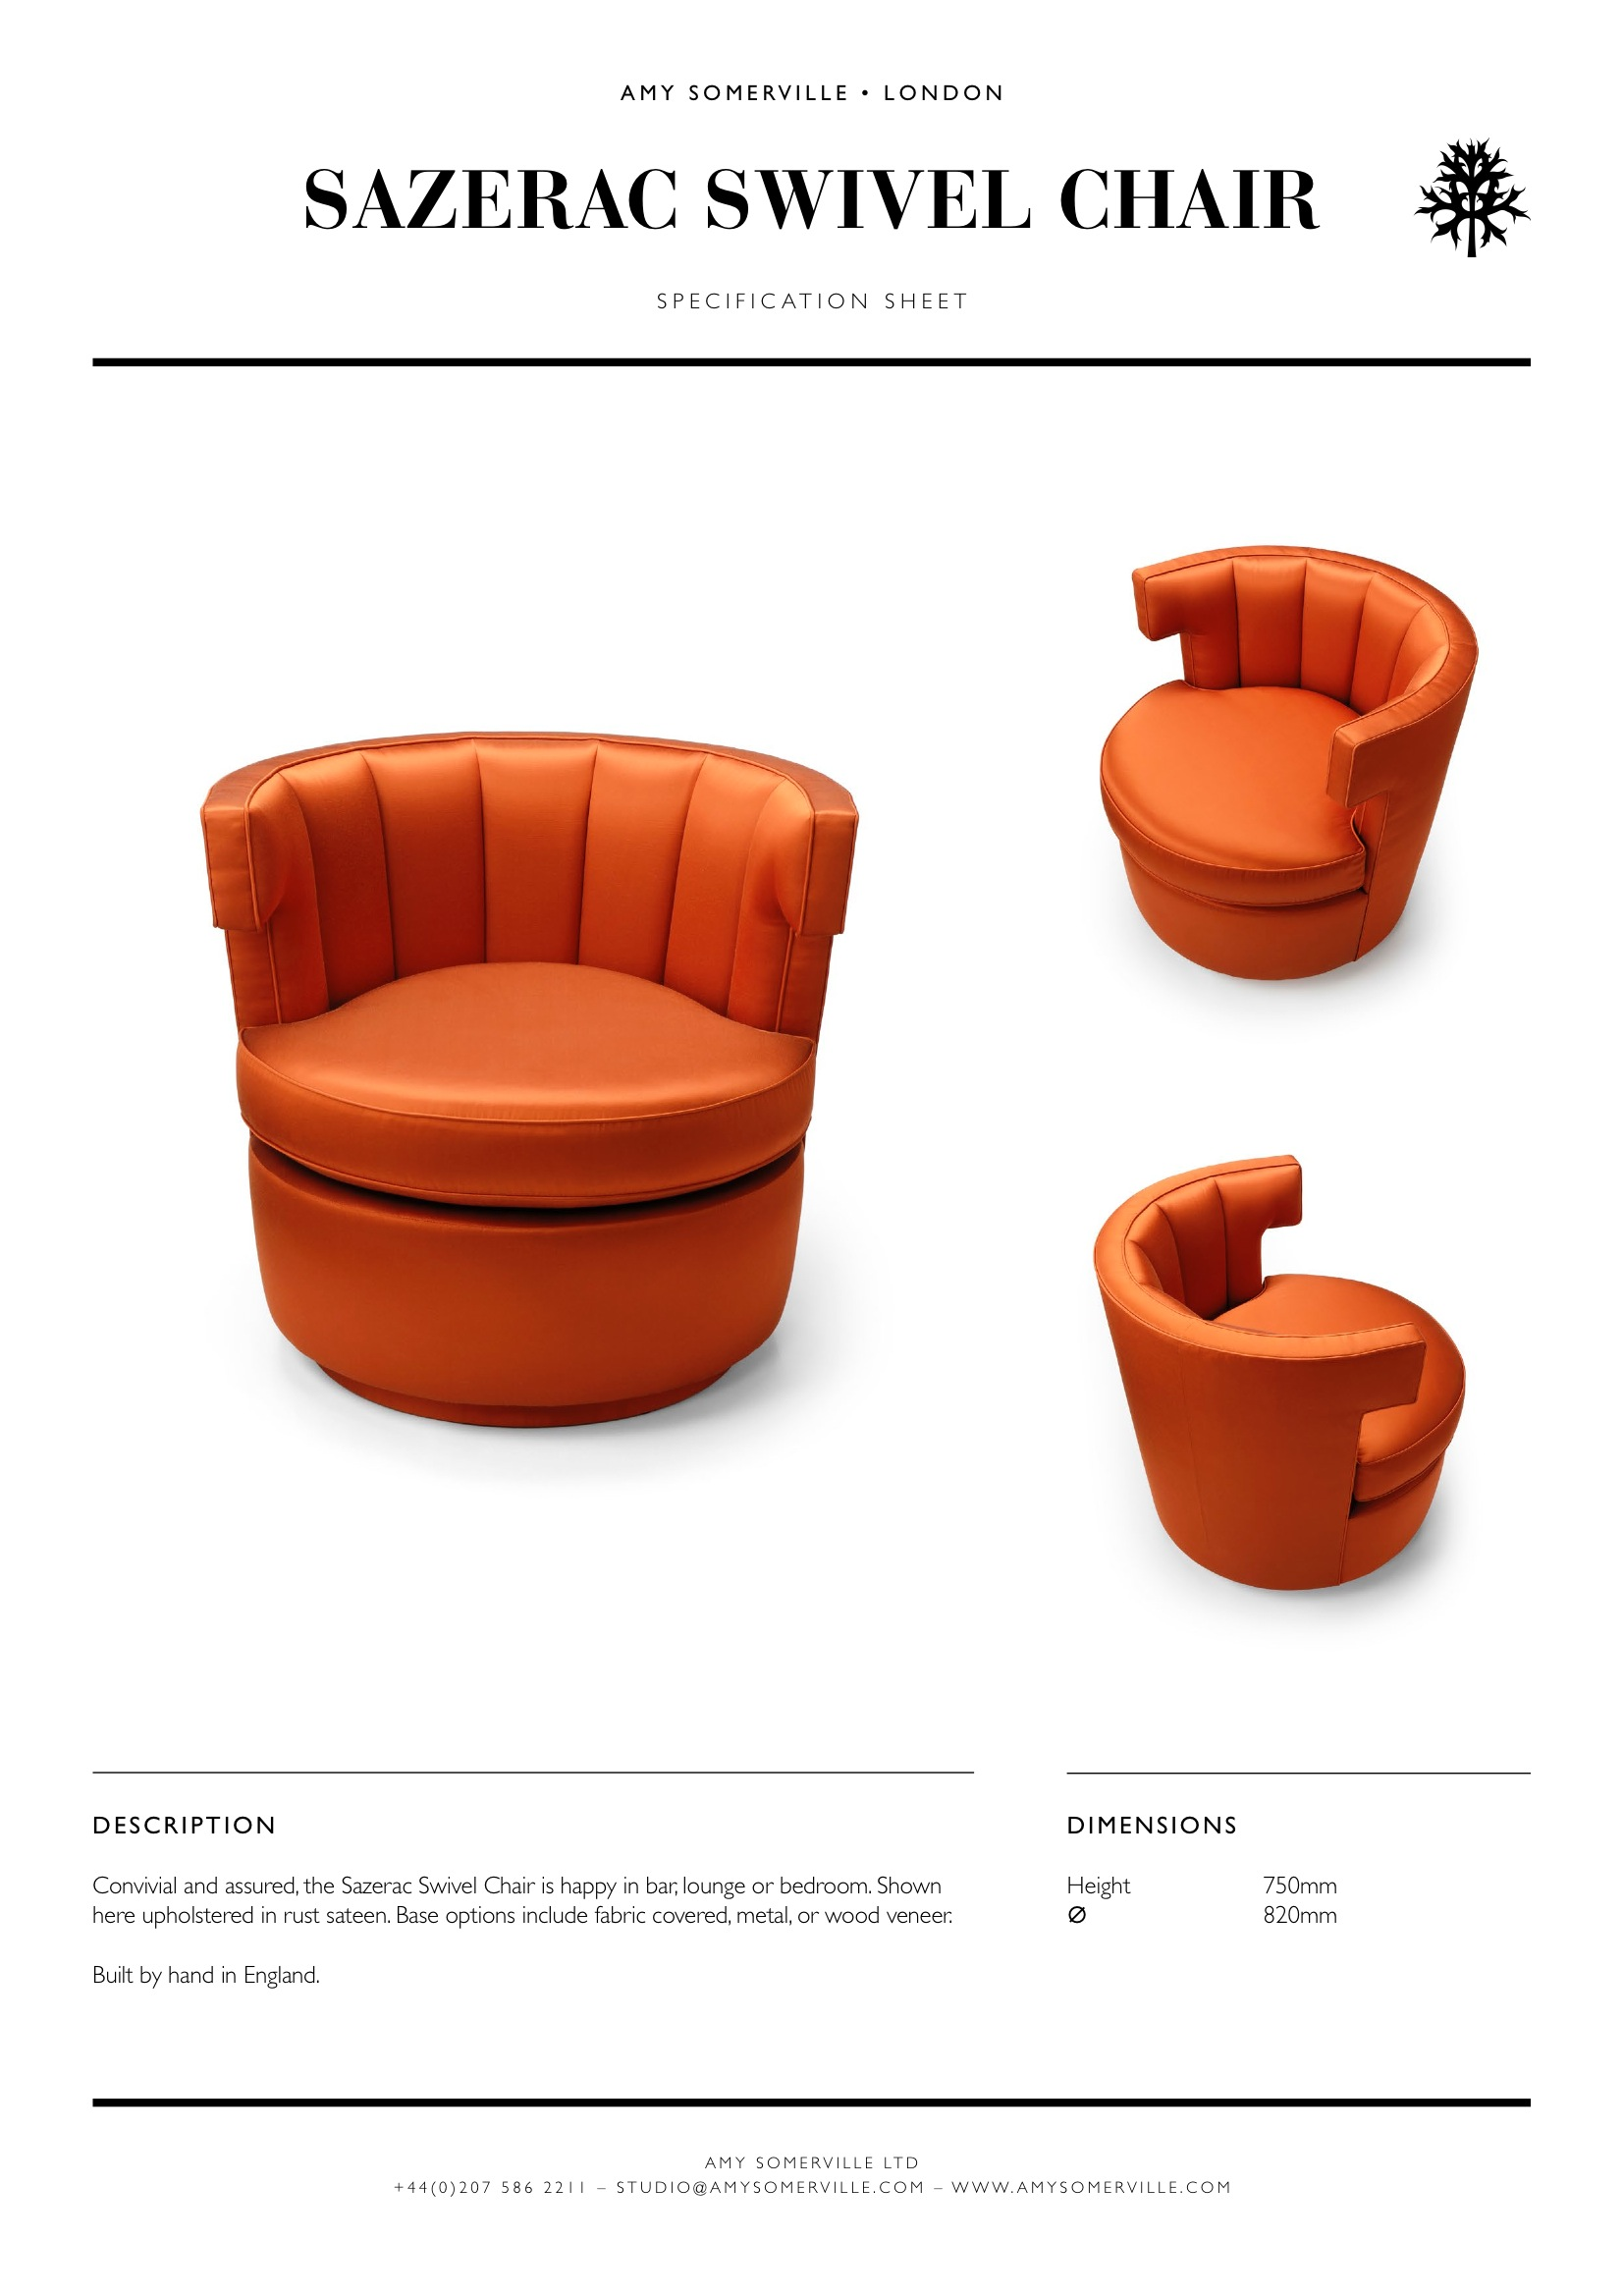 Sazerac Swivel Chair Specification Sheet